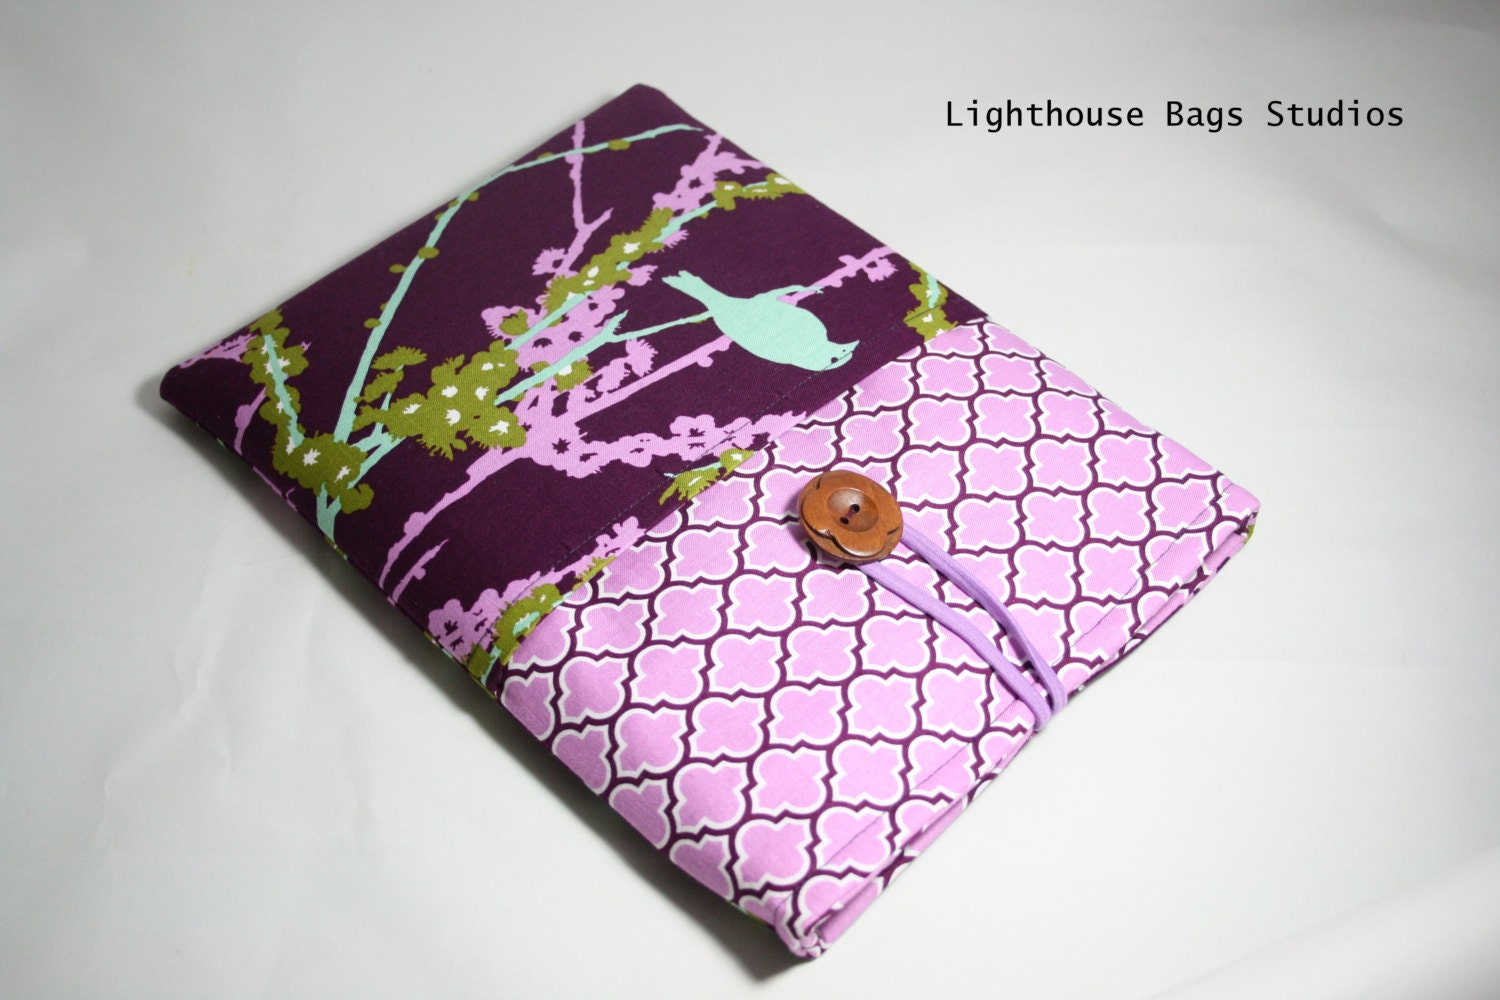 iPad 2 or 3 Sleeve / Cover in Brown Paisley Fabric - Lighthousebags